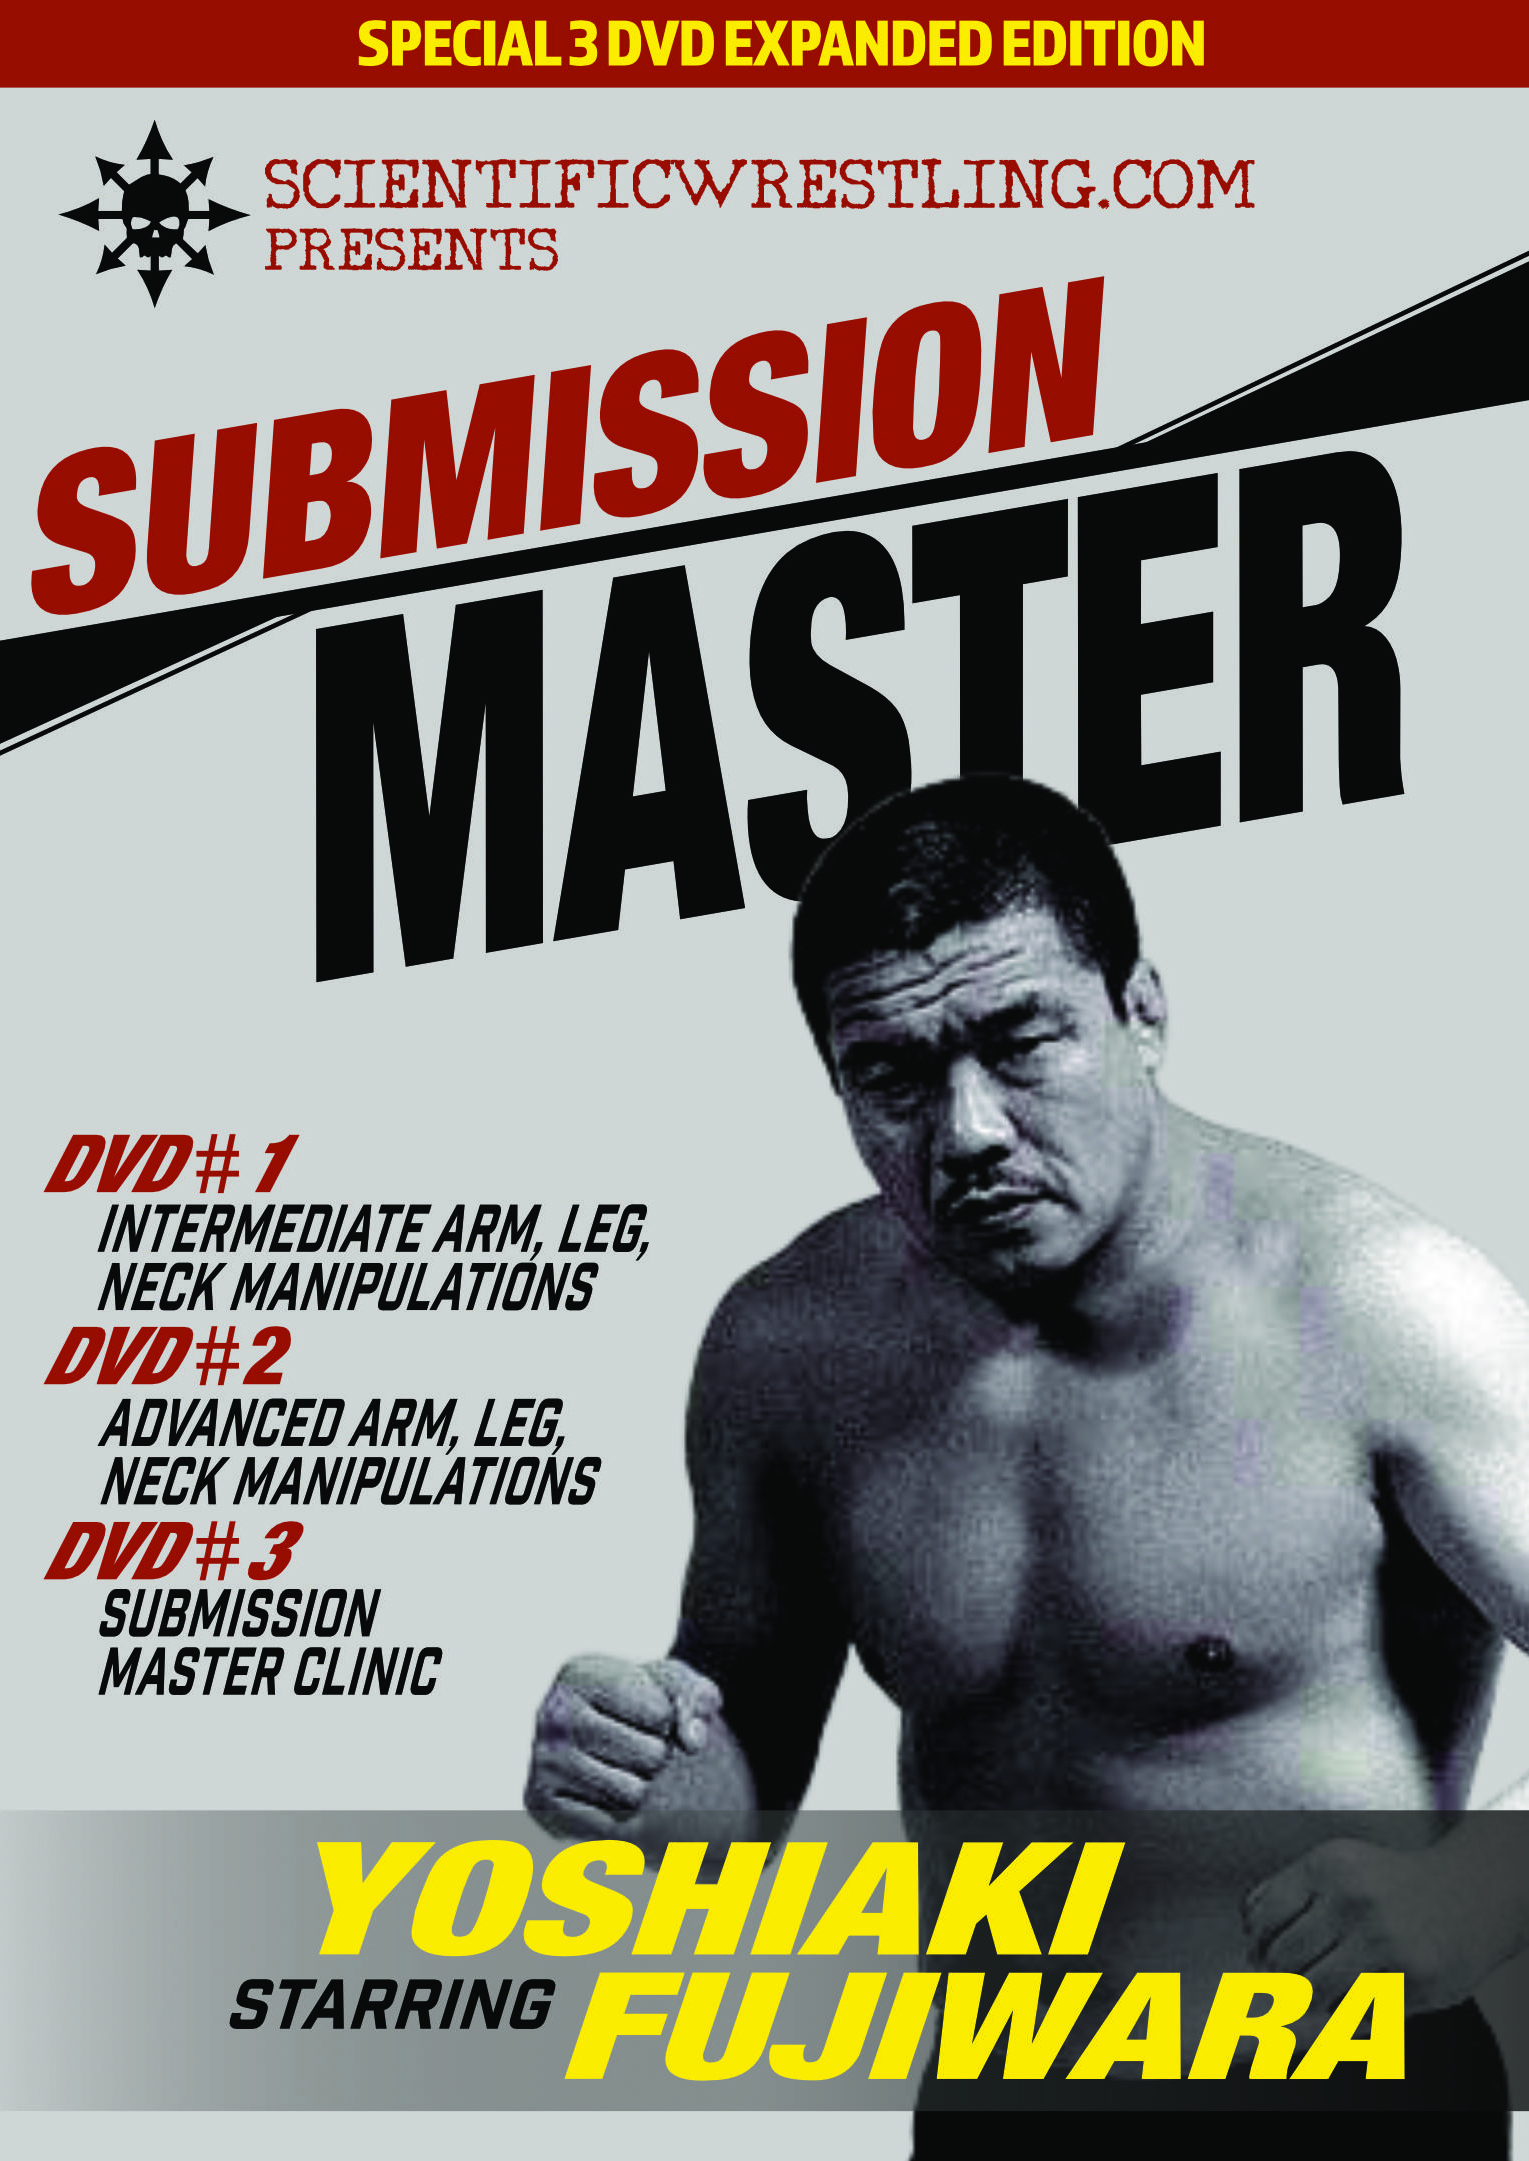 Fujiwara's Sub-Mission Master Expanded Deluxe 3 DVD set